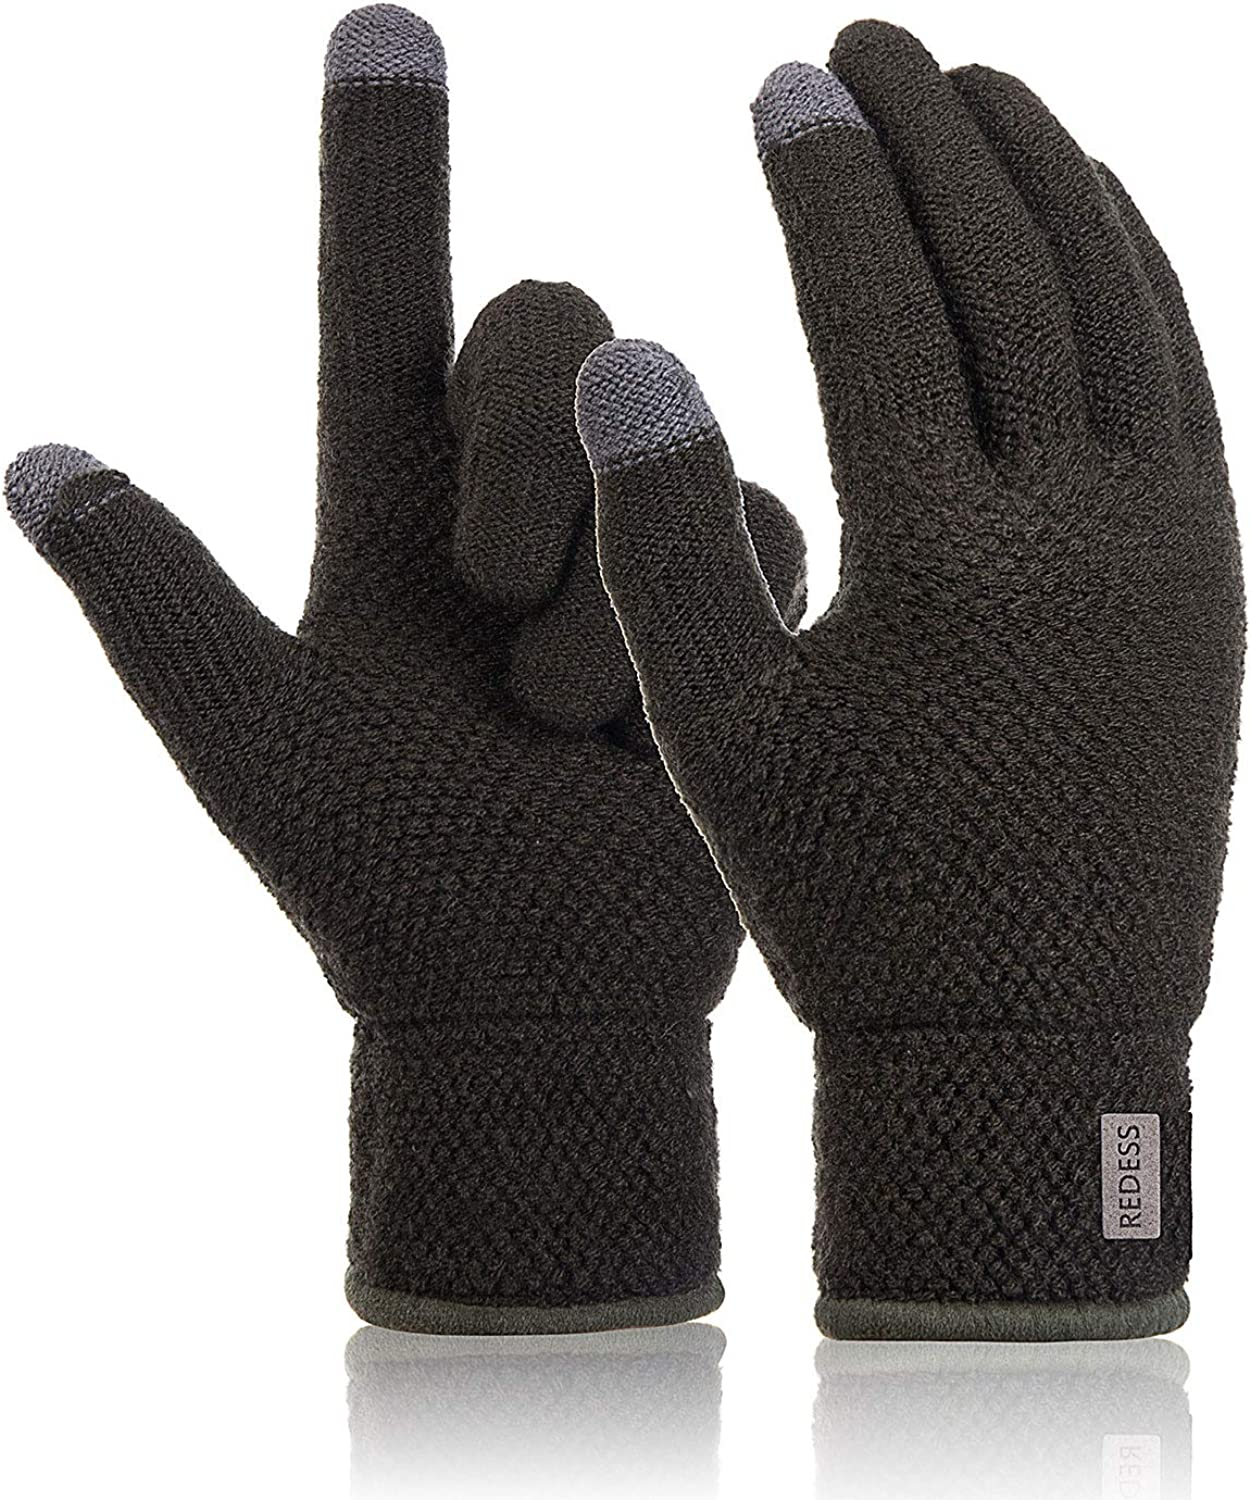 REDESS Womens Mens Warm Winter Warm Touchscreen Knit Gloves,High Sensitive Fleece Lined Texting Gloves/Army Green